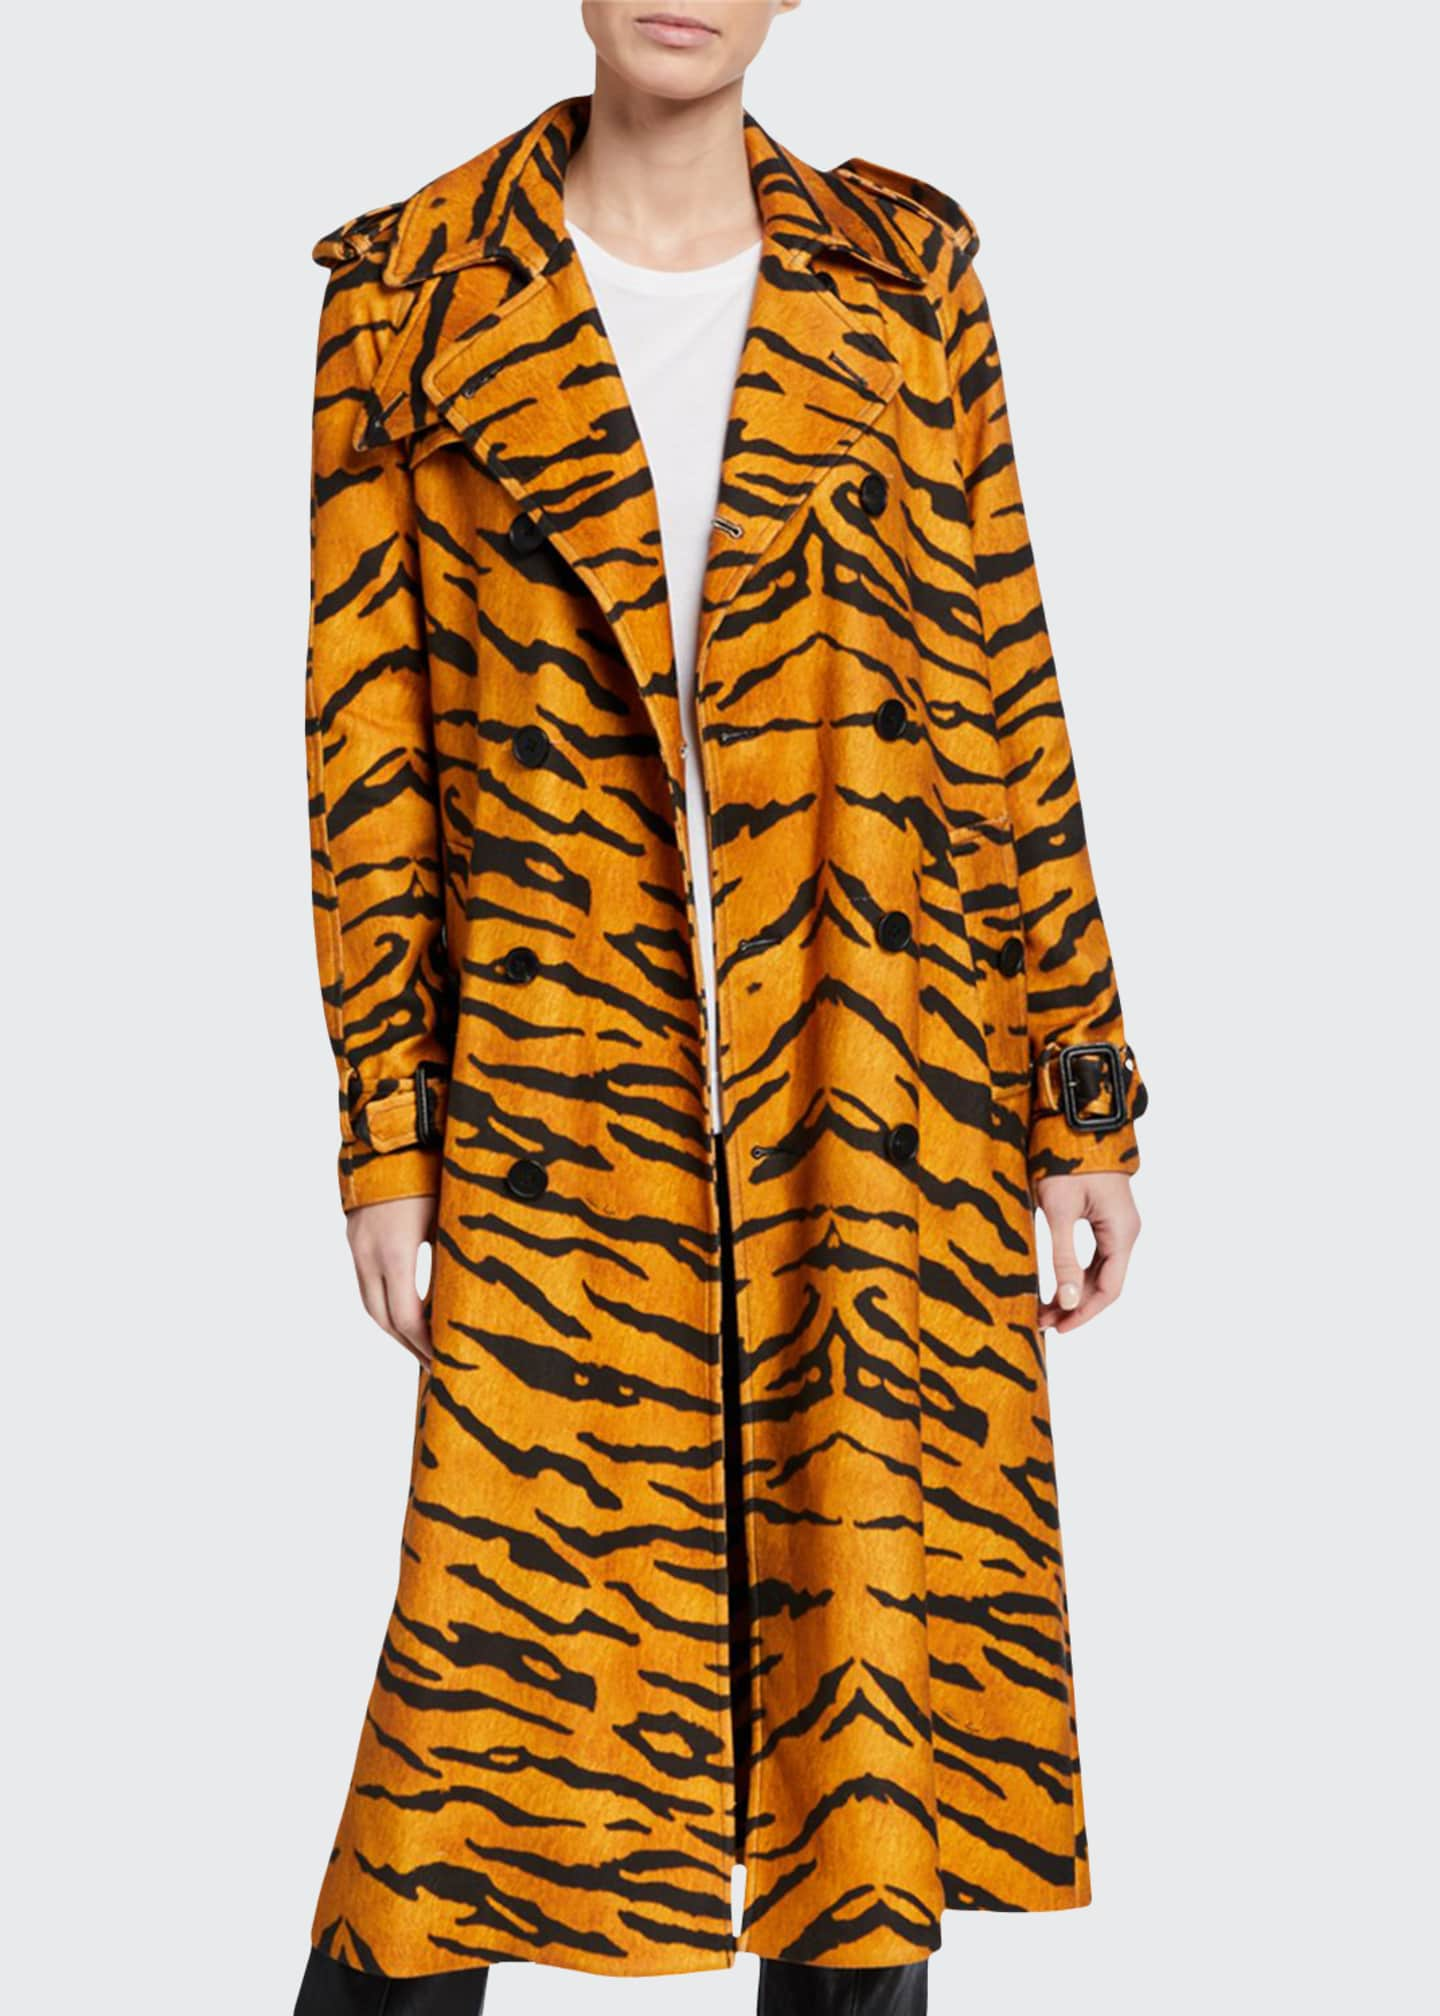 Adam Lippes Tiger-Print Trench Coat